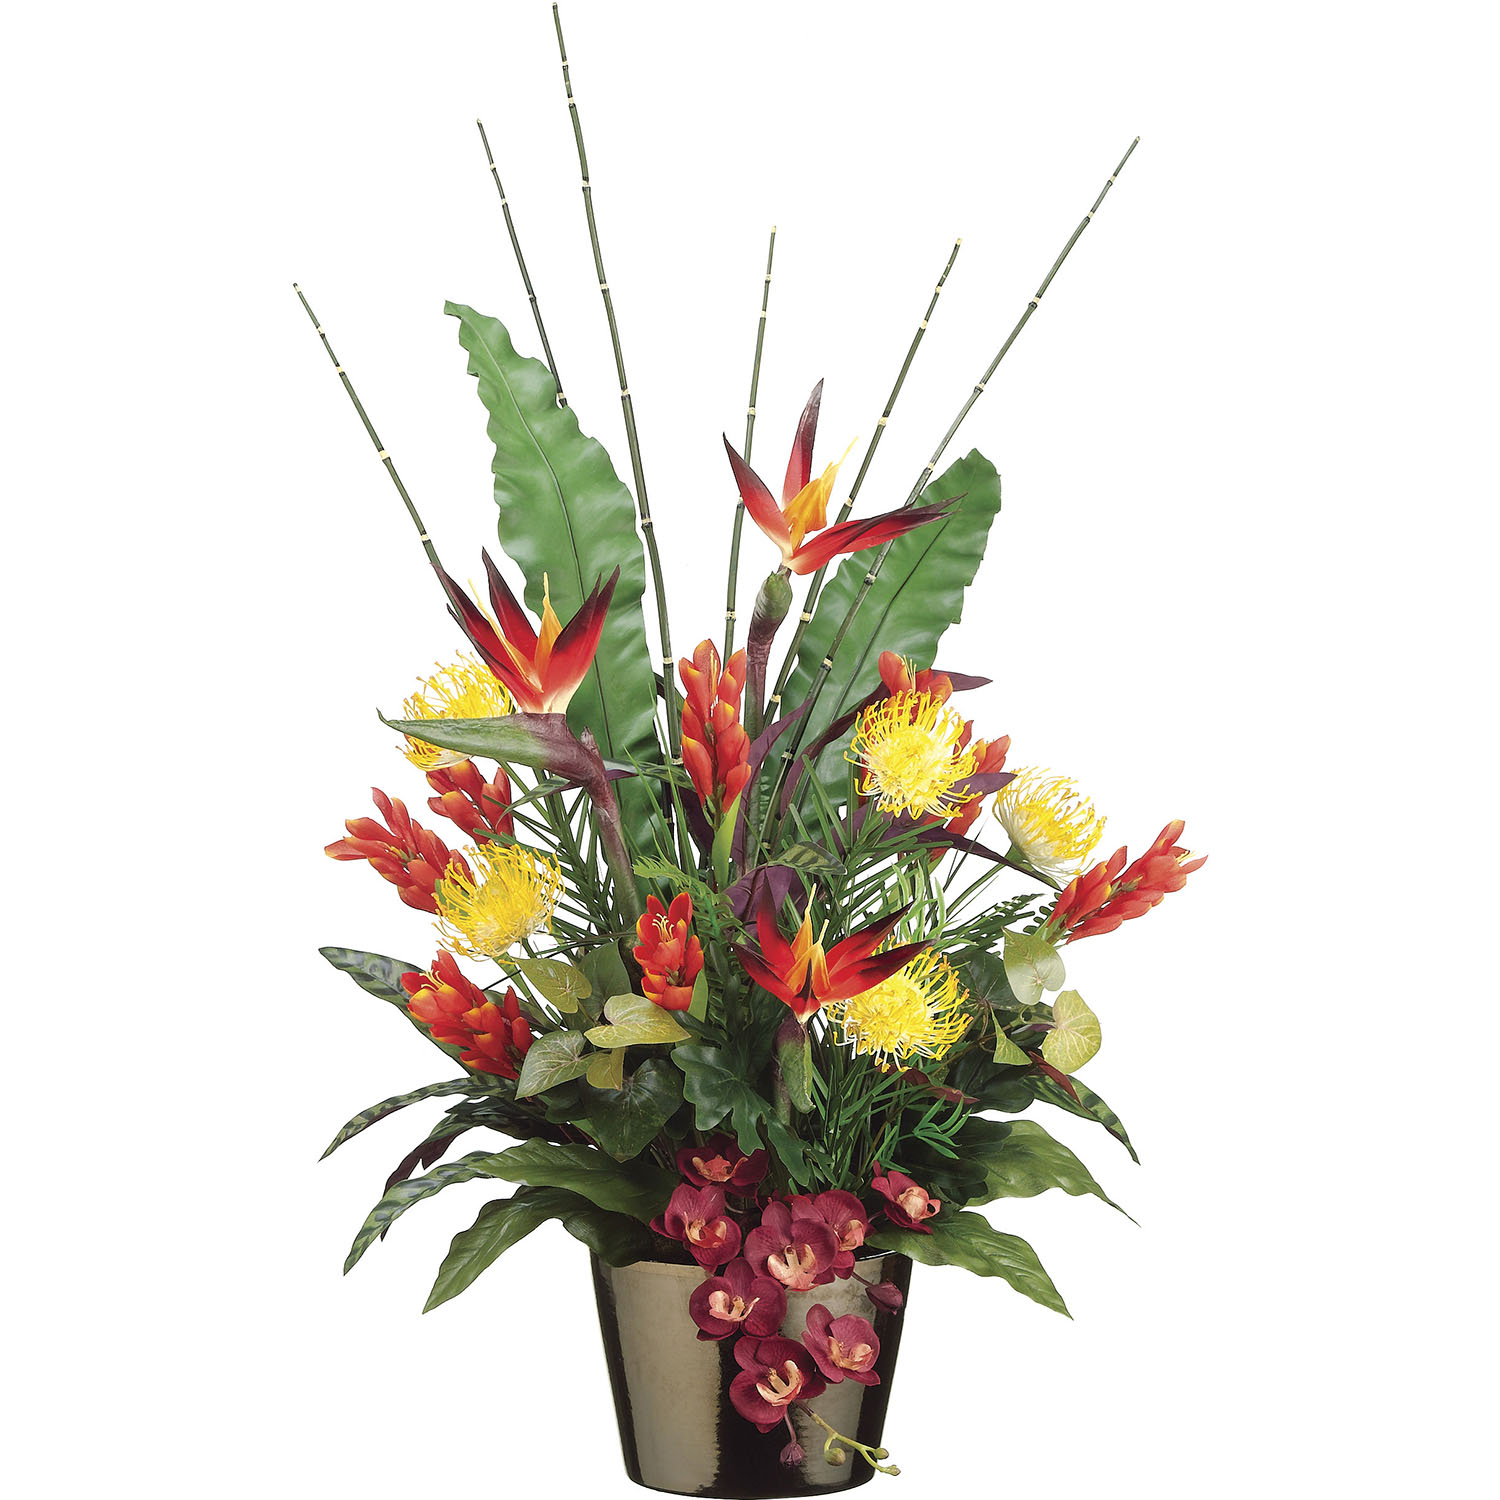 40 Inch Bird Of Paradise, Protea, & Ginger Flowers In Ceramic Pot